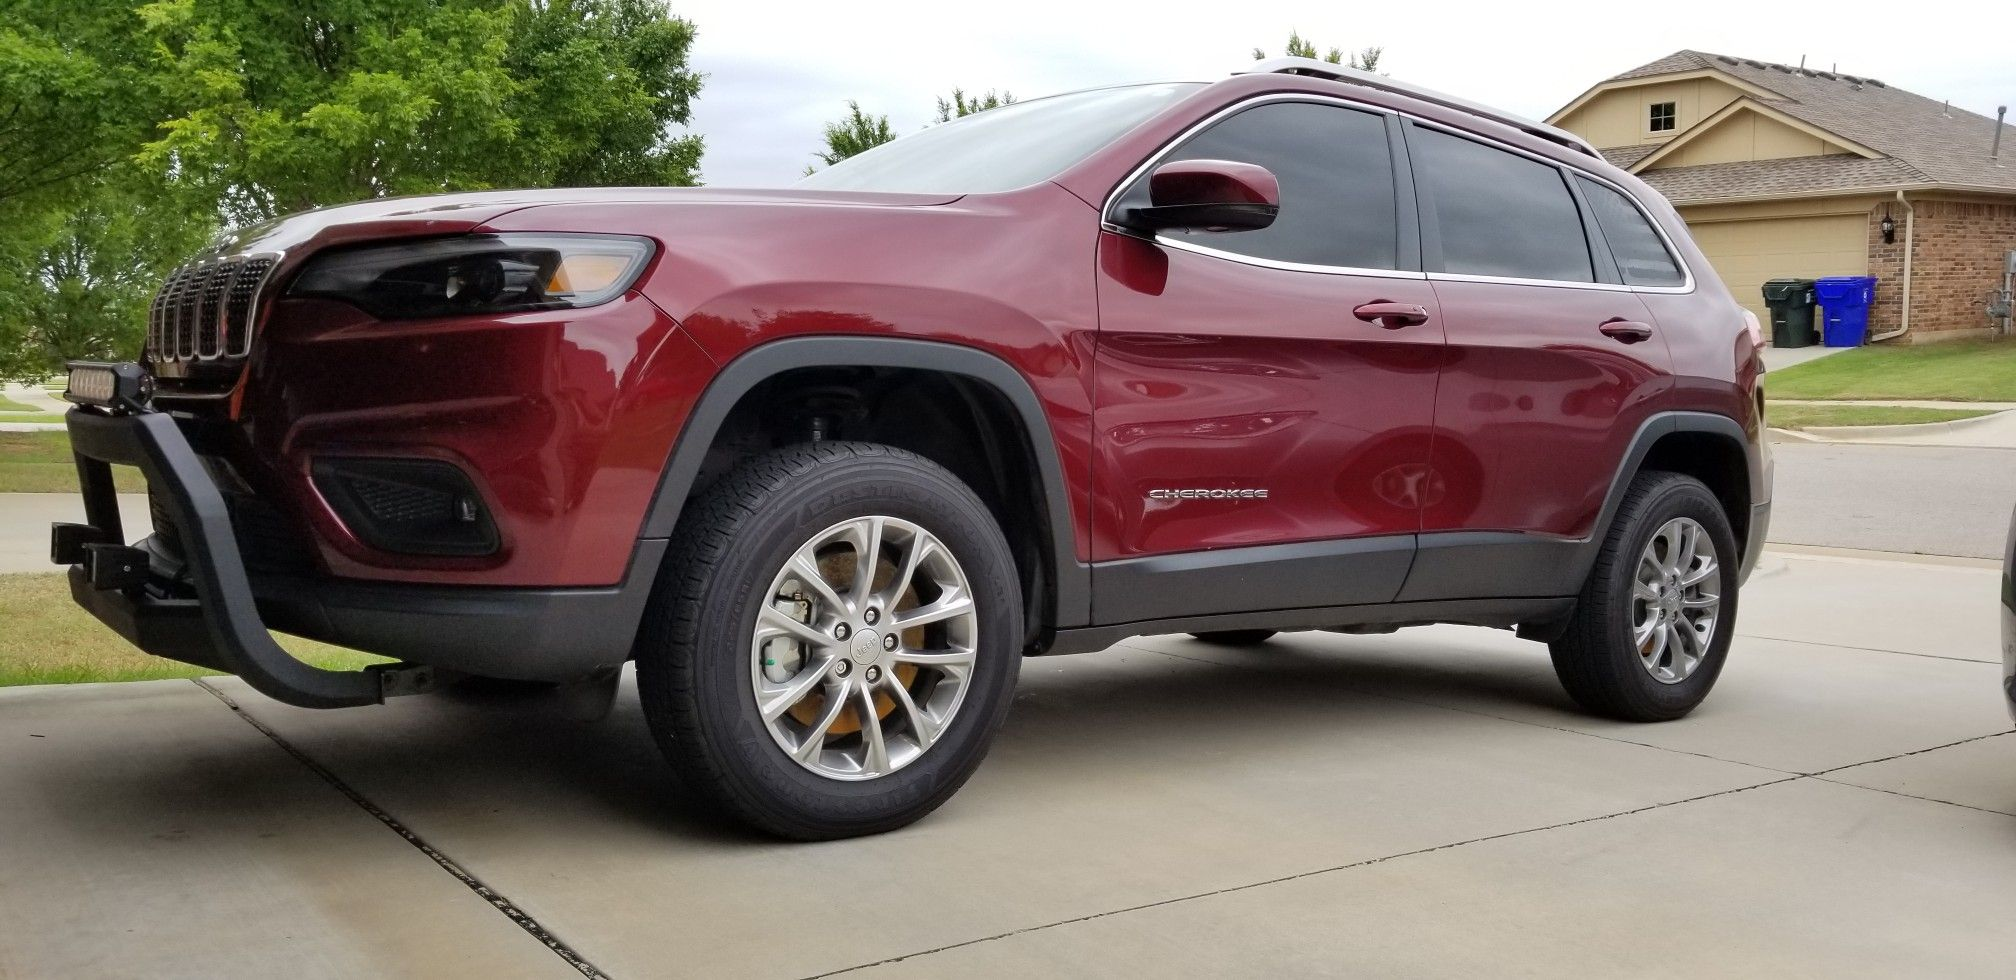 Pin By Jay Parker On 2019 Jeep Cherokee Kl Latitude Plus 4x4 Suv Cars Jeep Cherokee Best Suv Cars